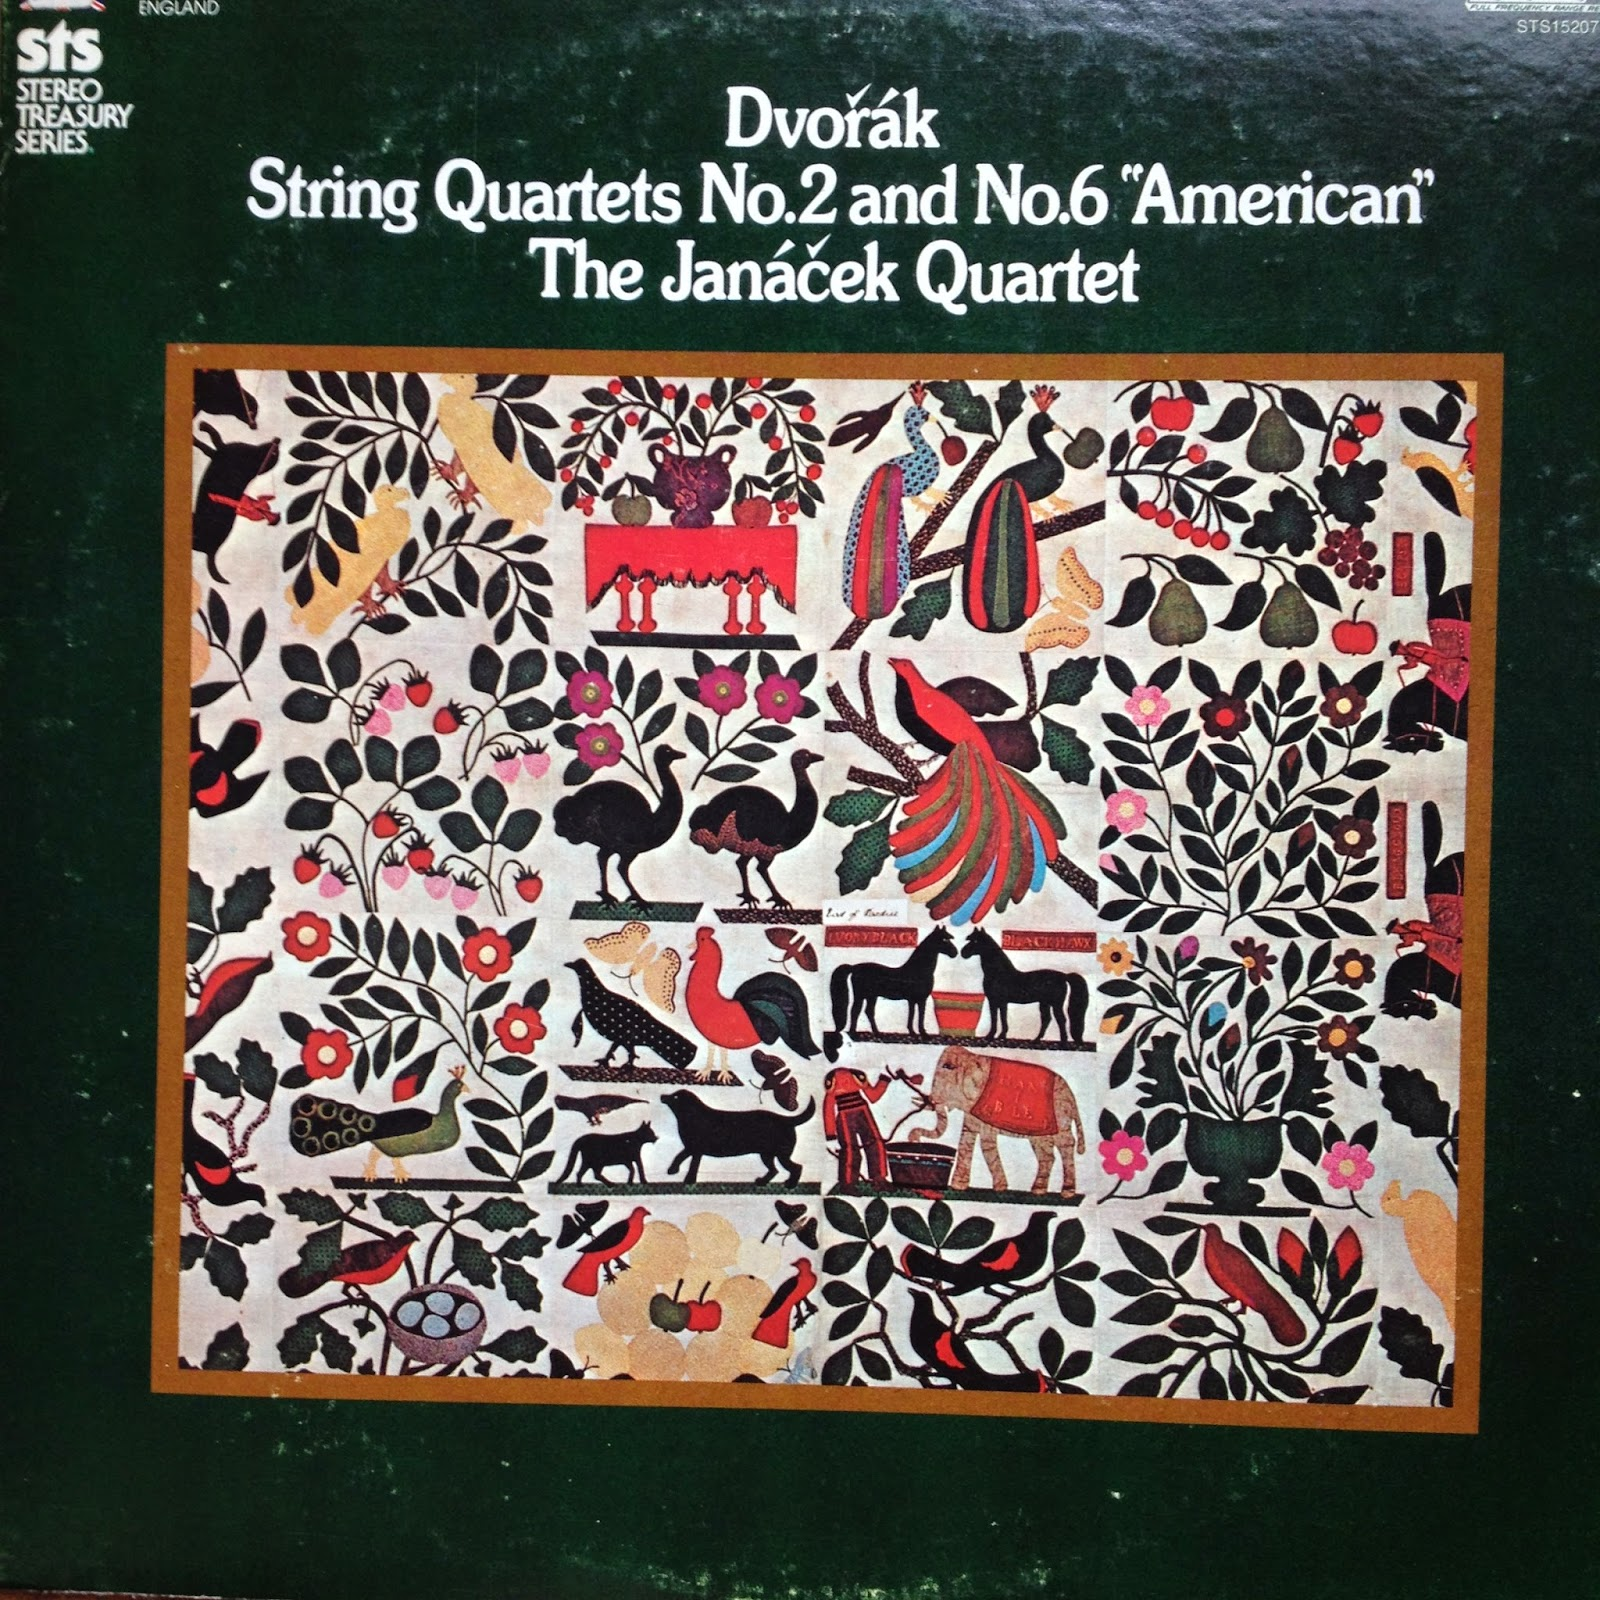 LP: Dvorak string quartets: 2 and 6.